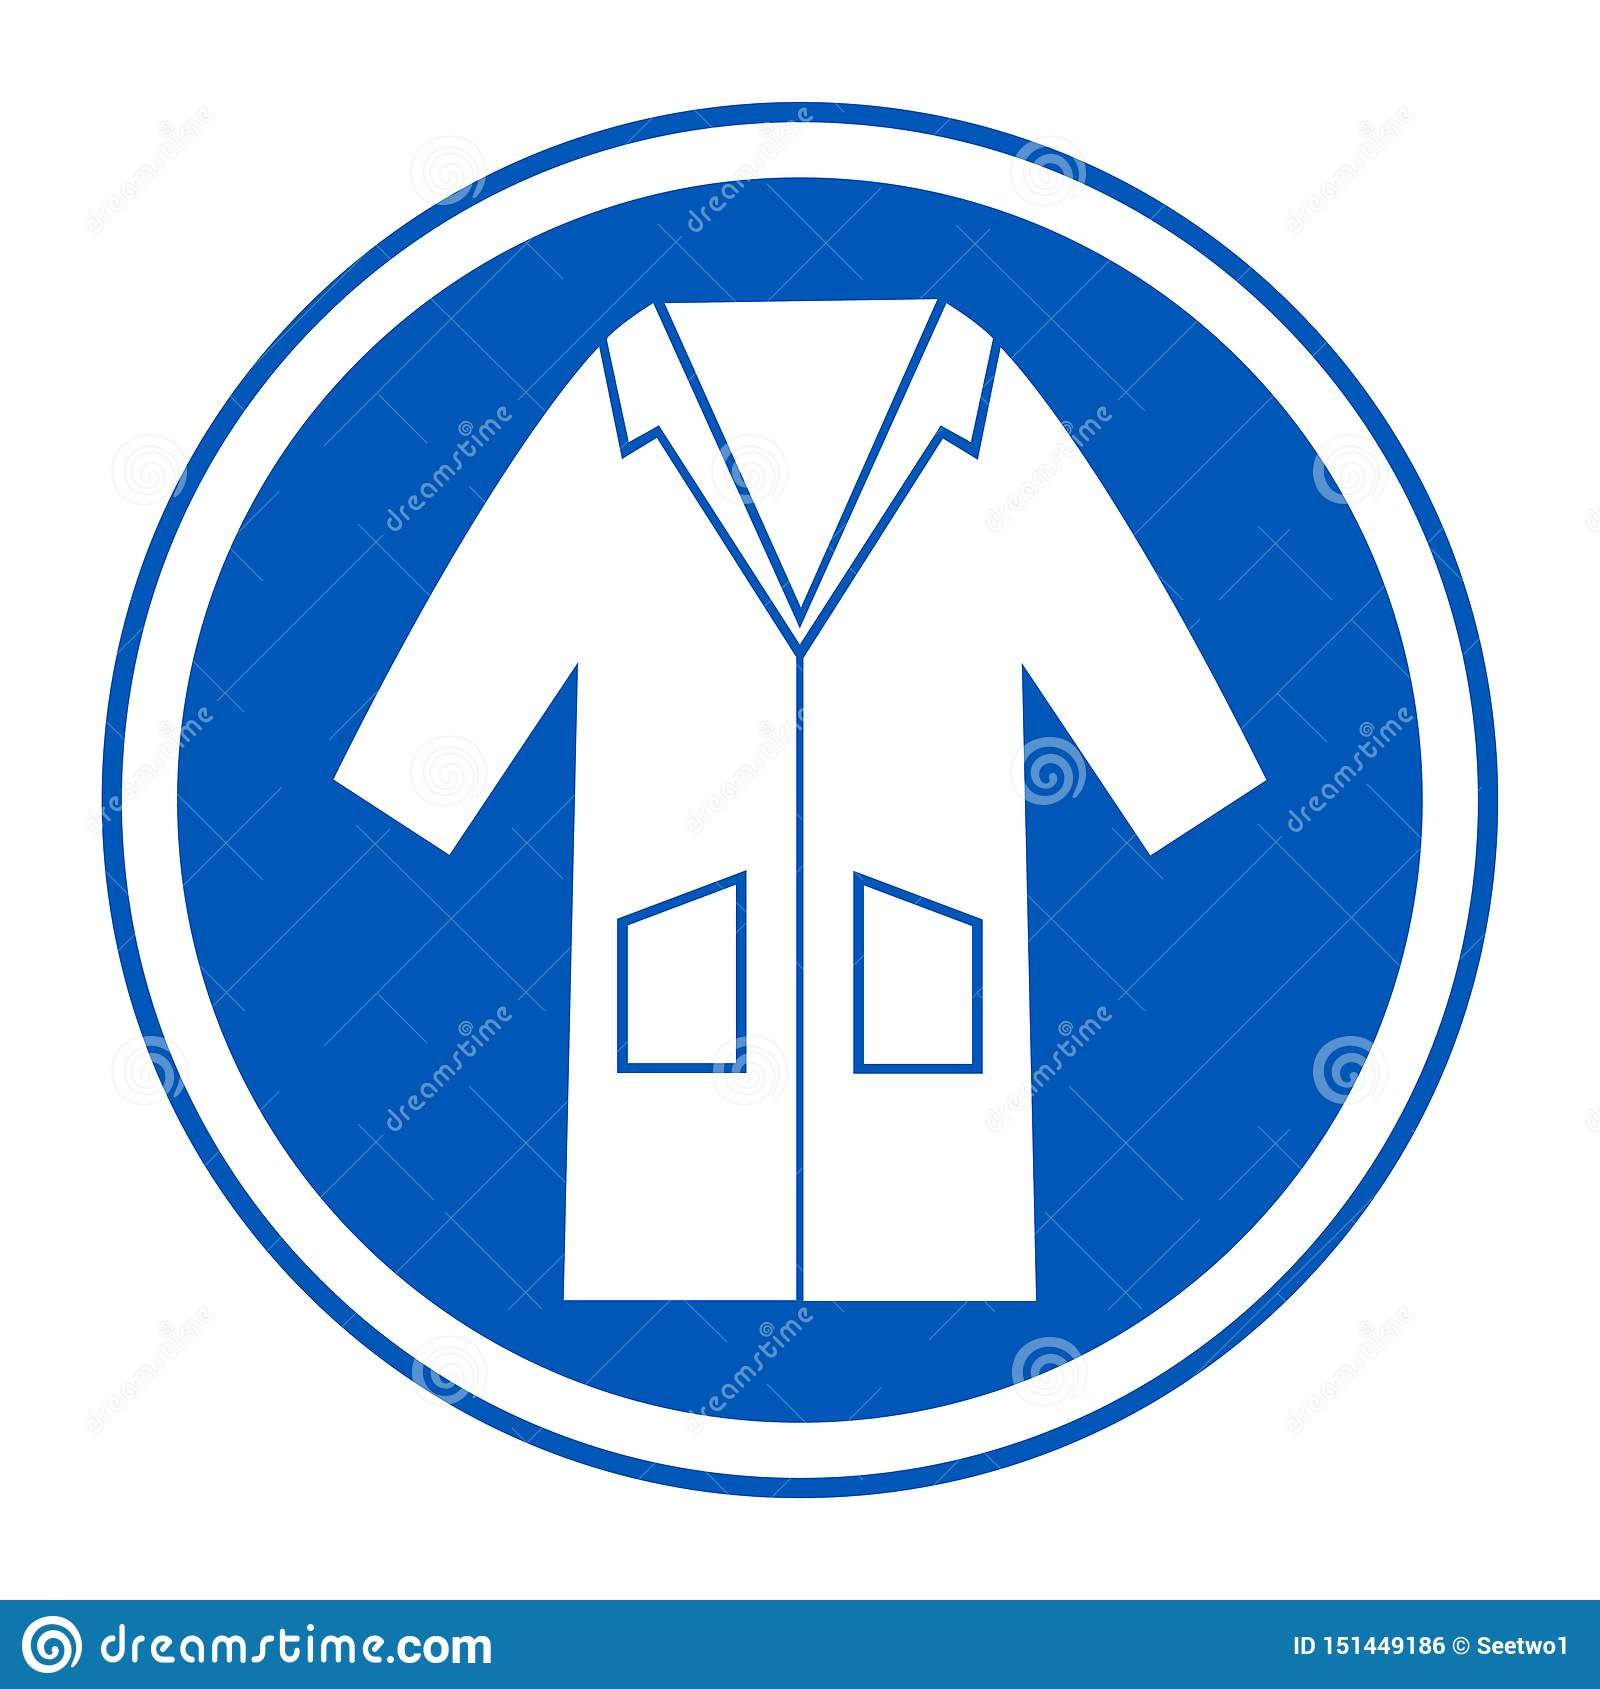 PPE Icon.Wear Smock Symbol Sign Isolate On White Background,Vector Illustration EPS.10